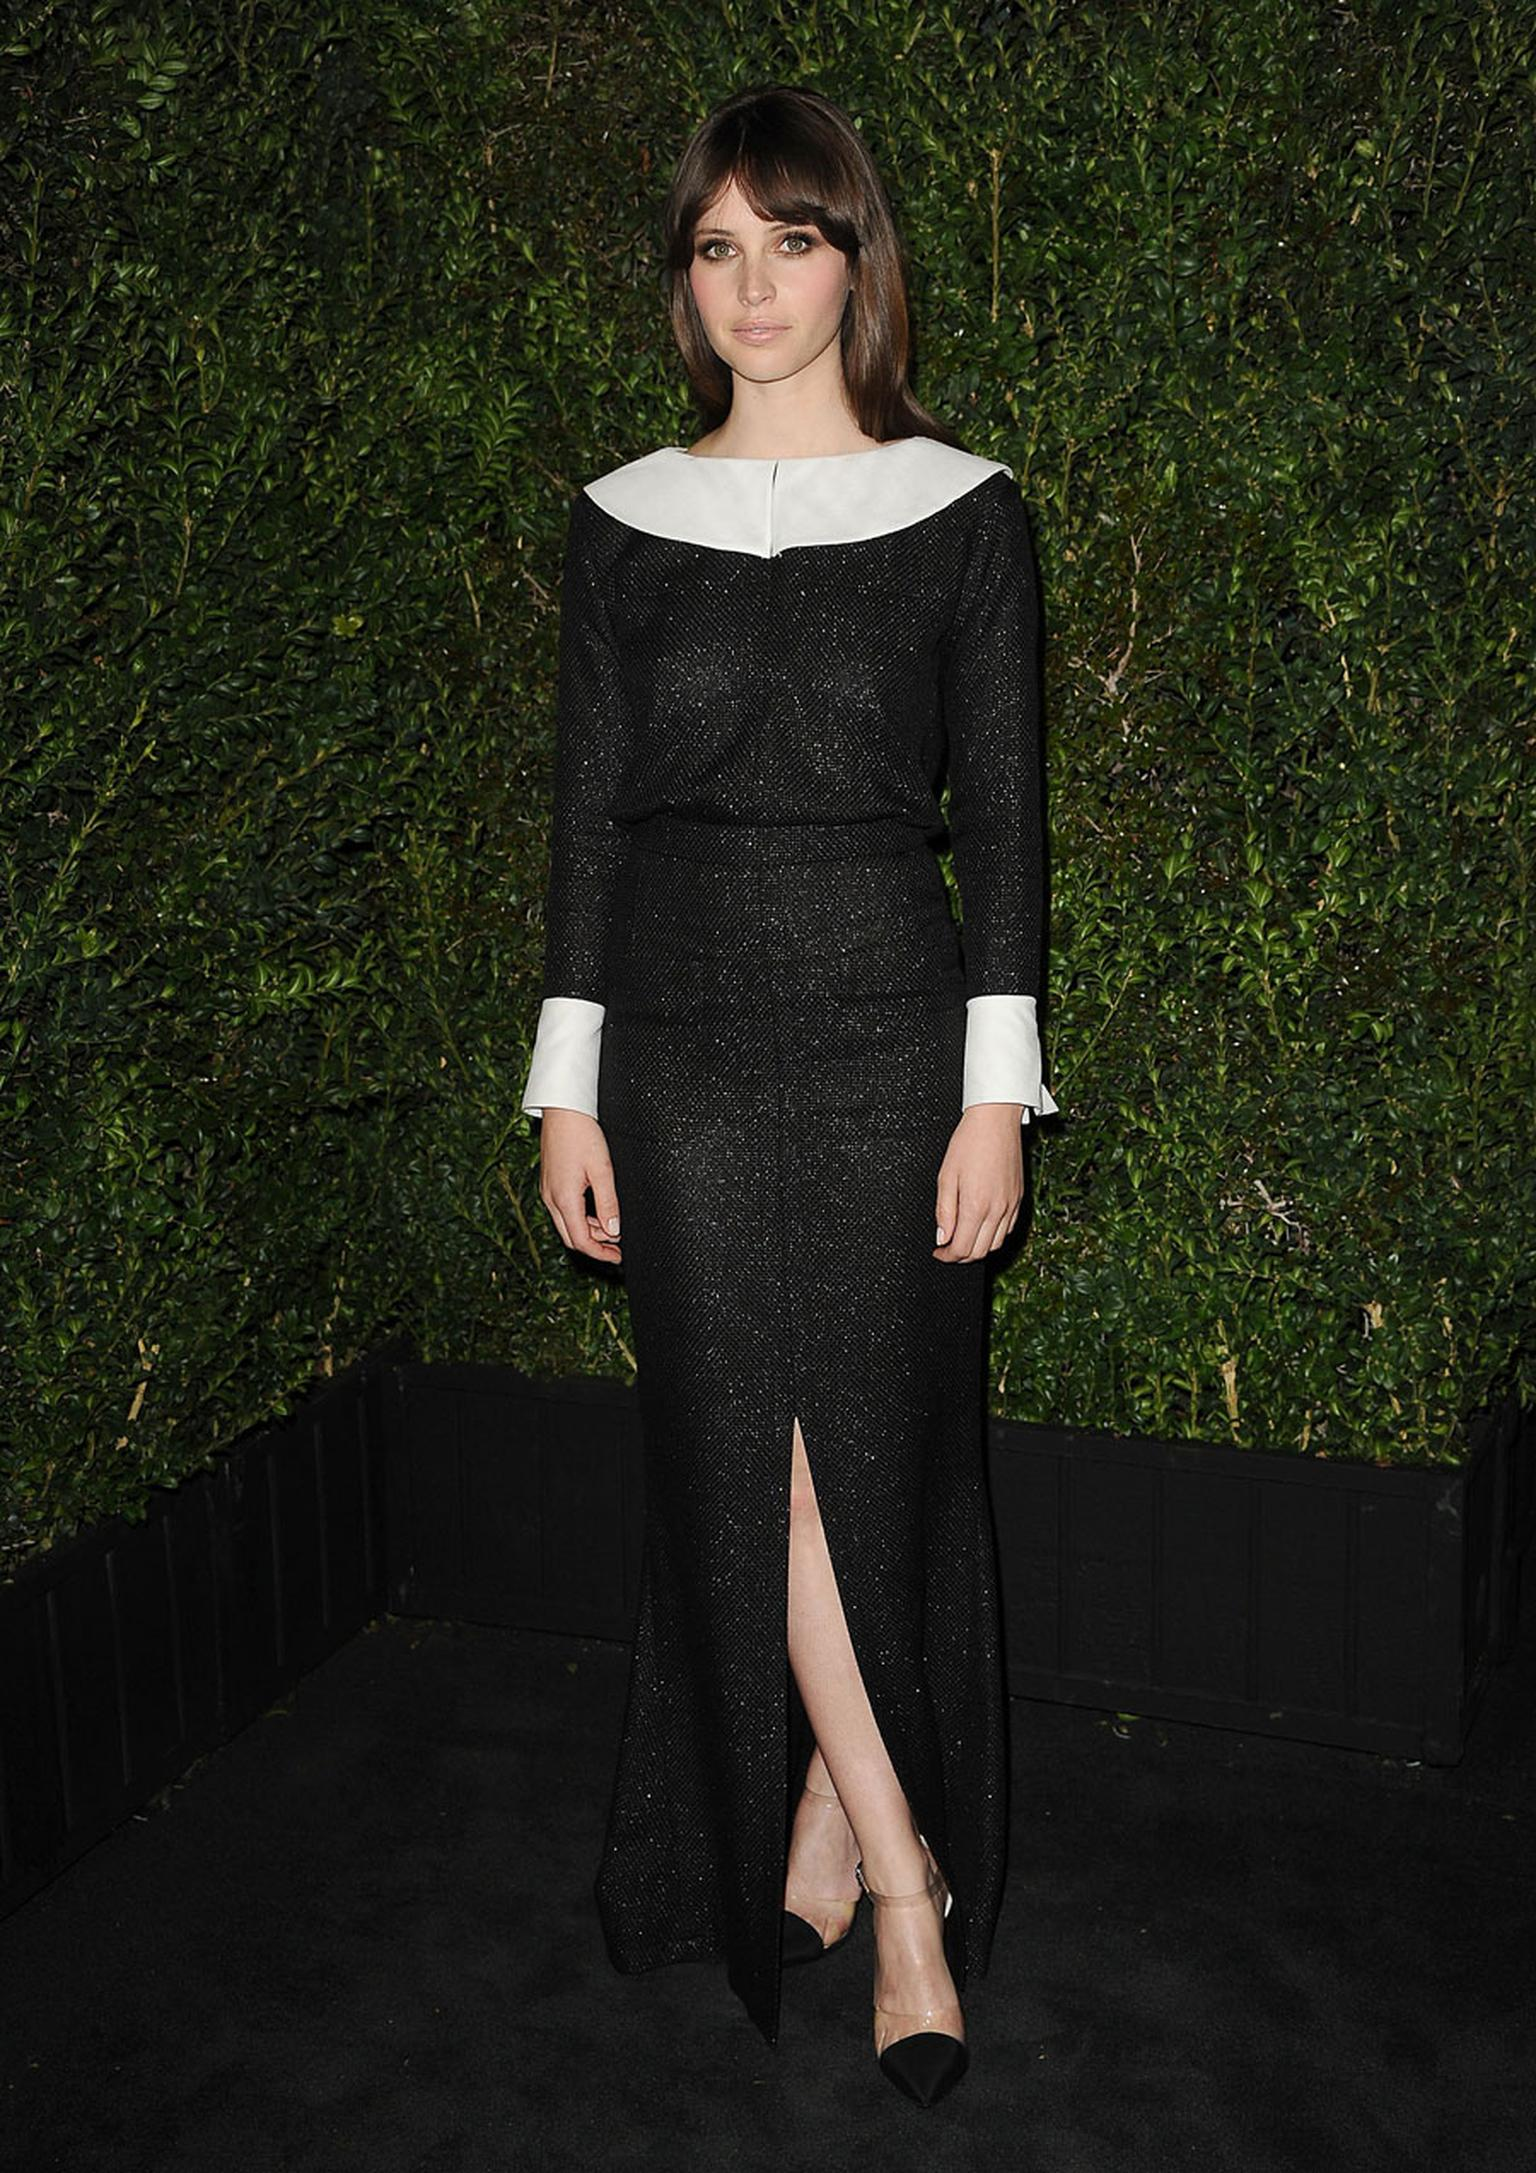 Felicity-Jones-Finch-Oscars-2013.jpg